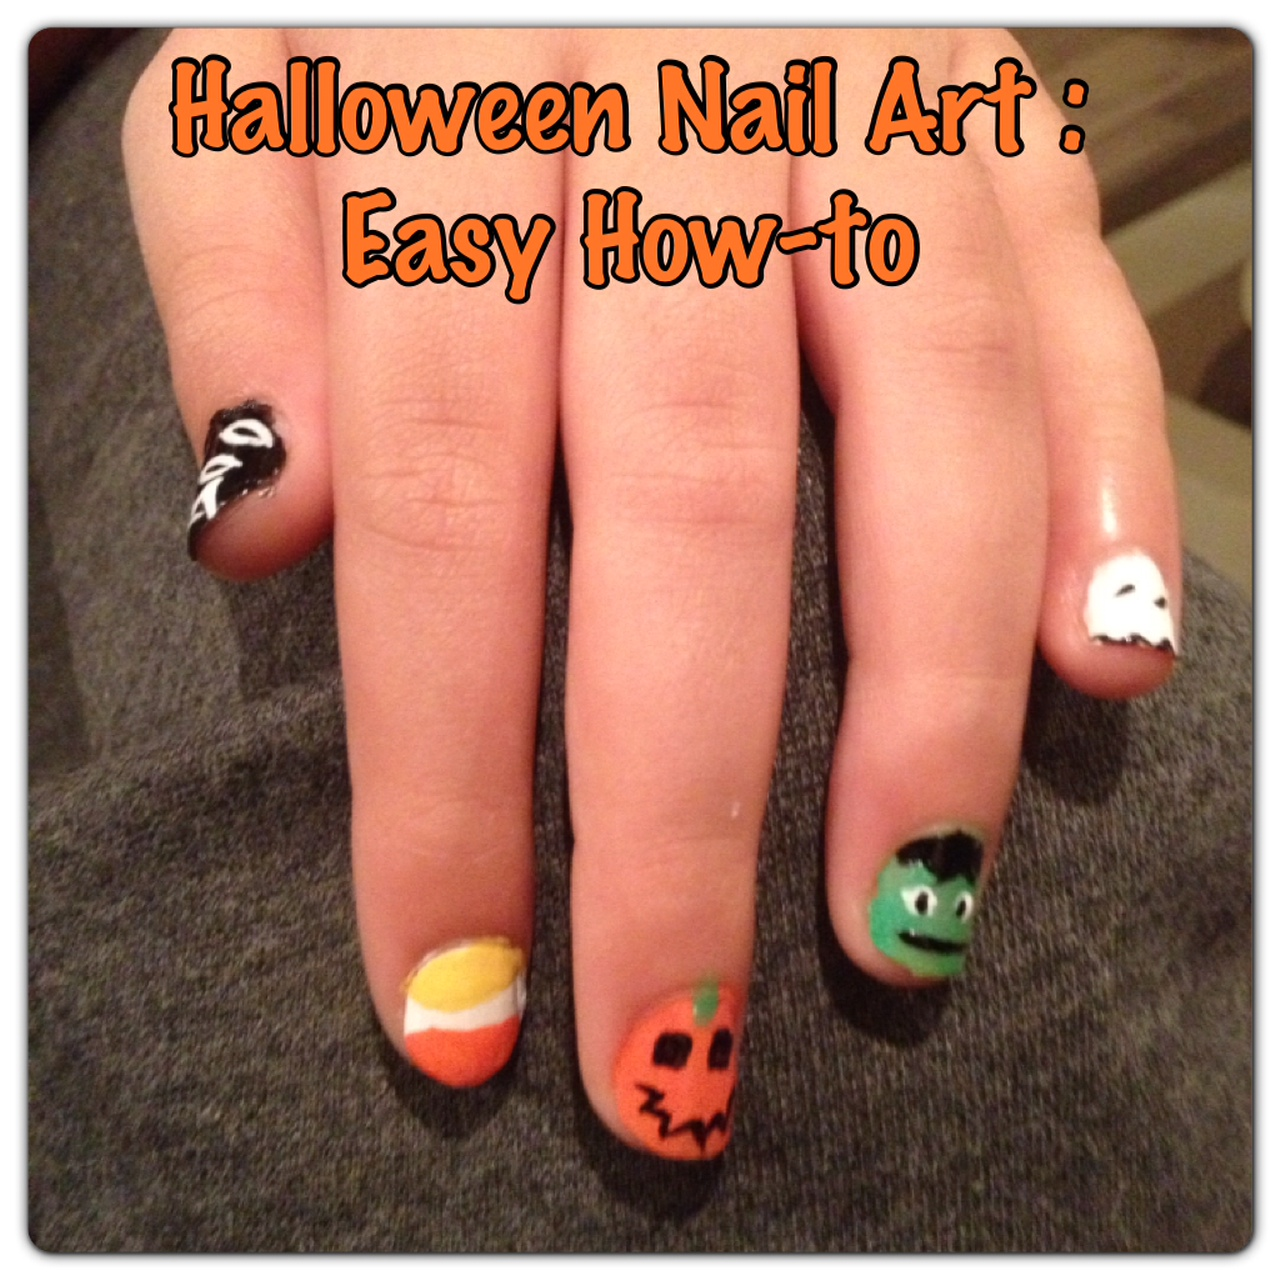 Halloween Nail Art: A simple How-to for 5 Fun Designs - How Wee Learn